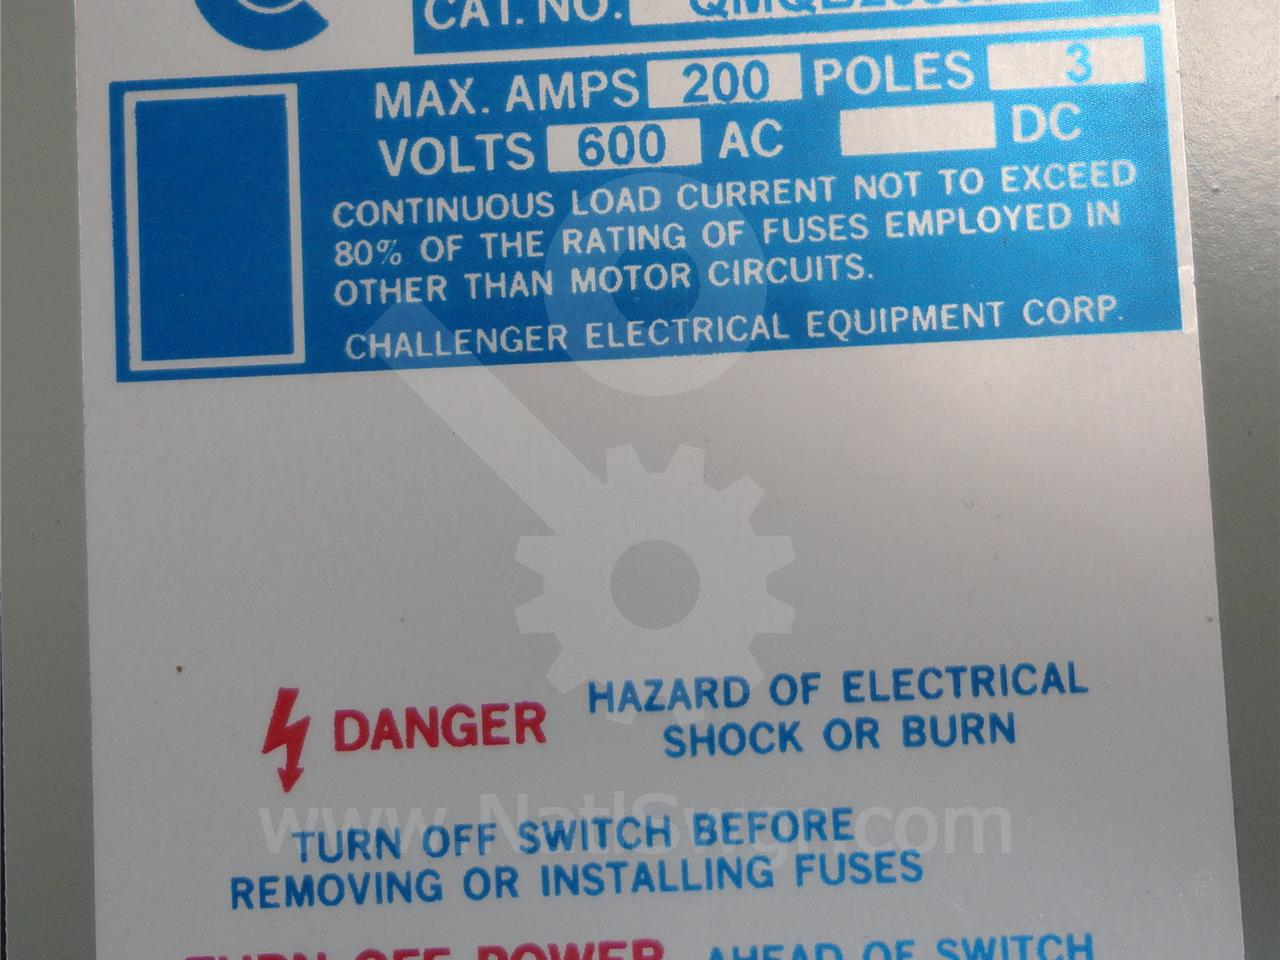 Challenger Electrical Equipment Corp